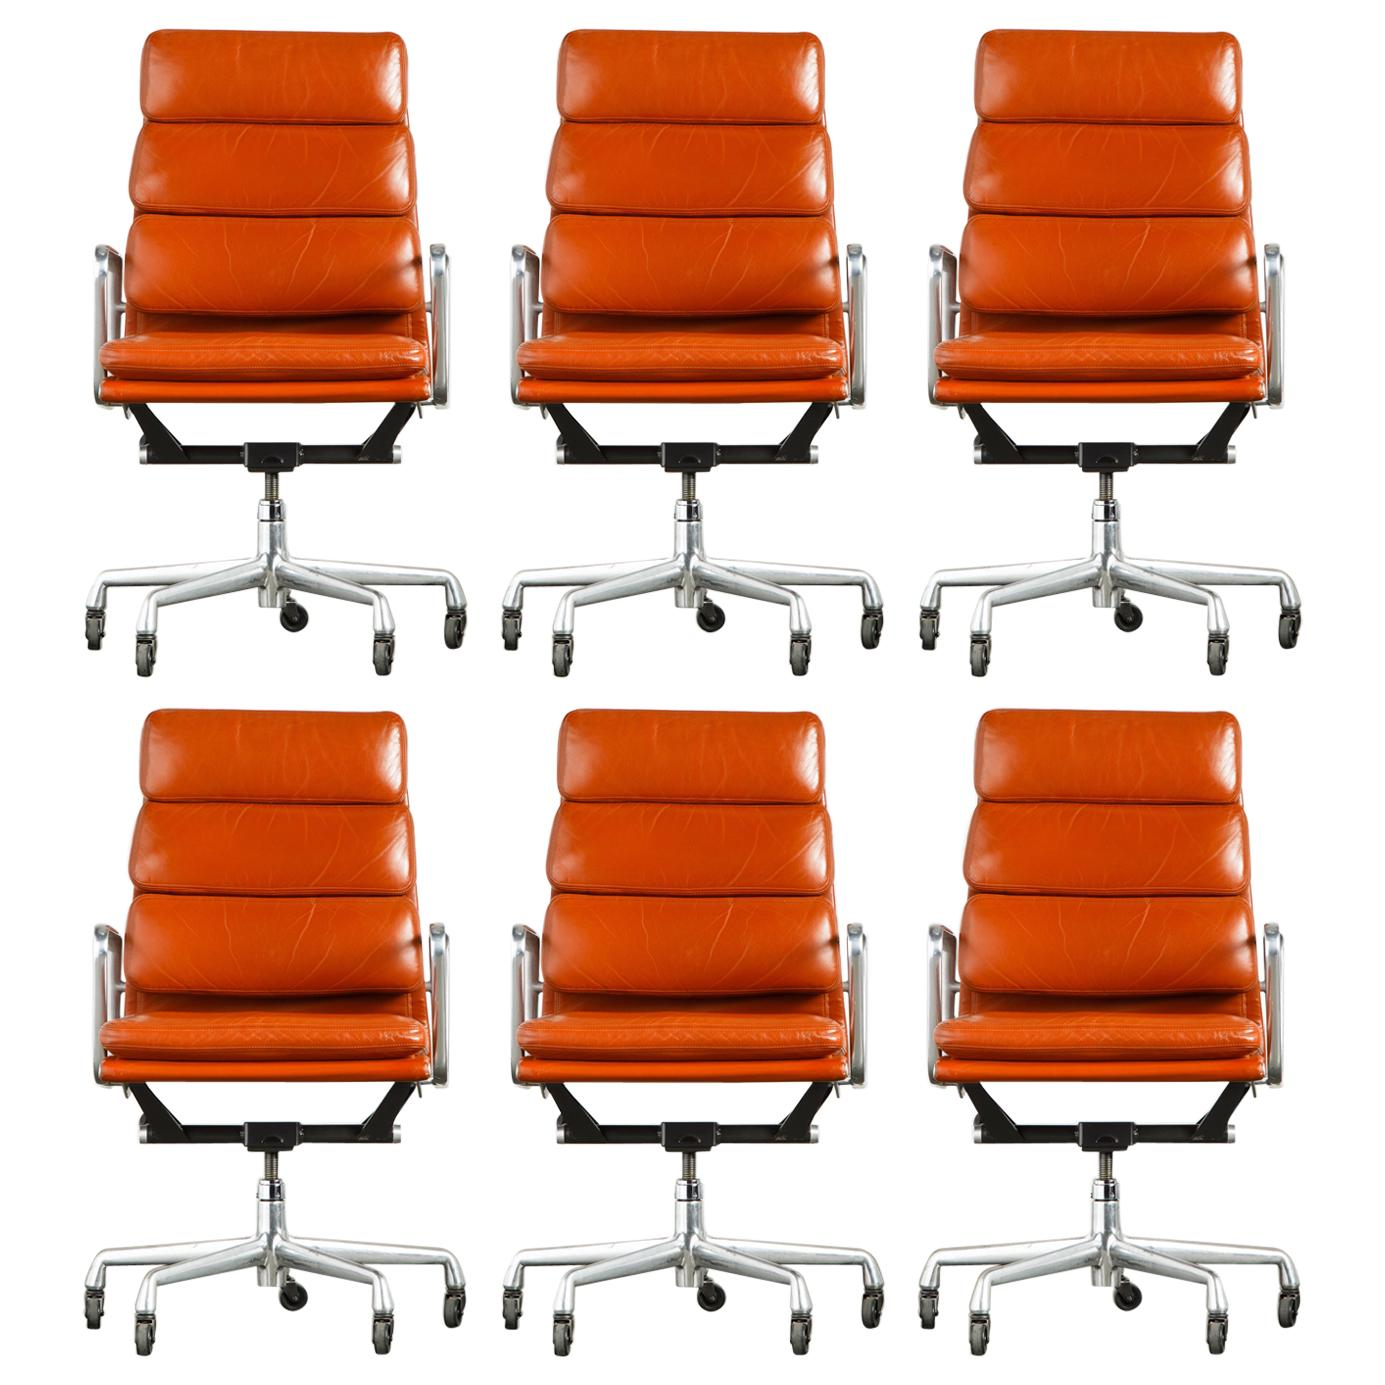 Charles Eames for Herman Miller Leather 'Soft Pad' Executive Desk Chairs, Signed